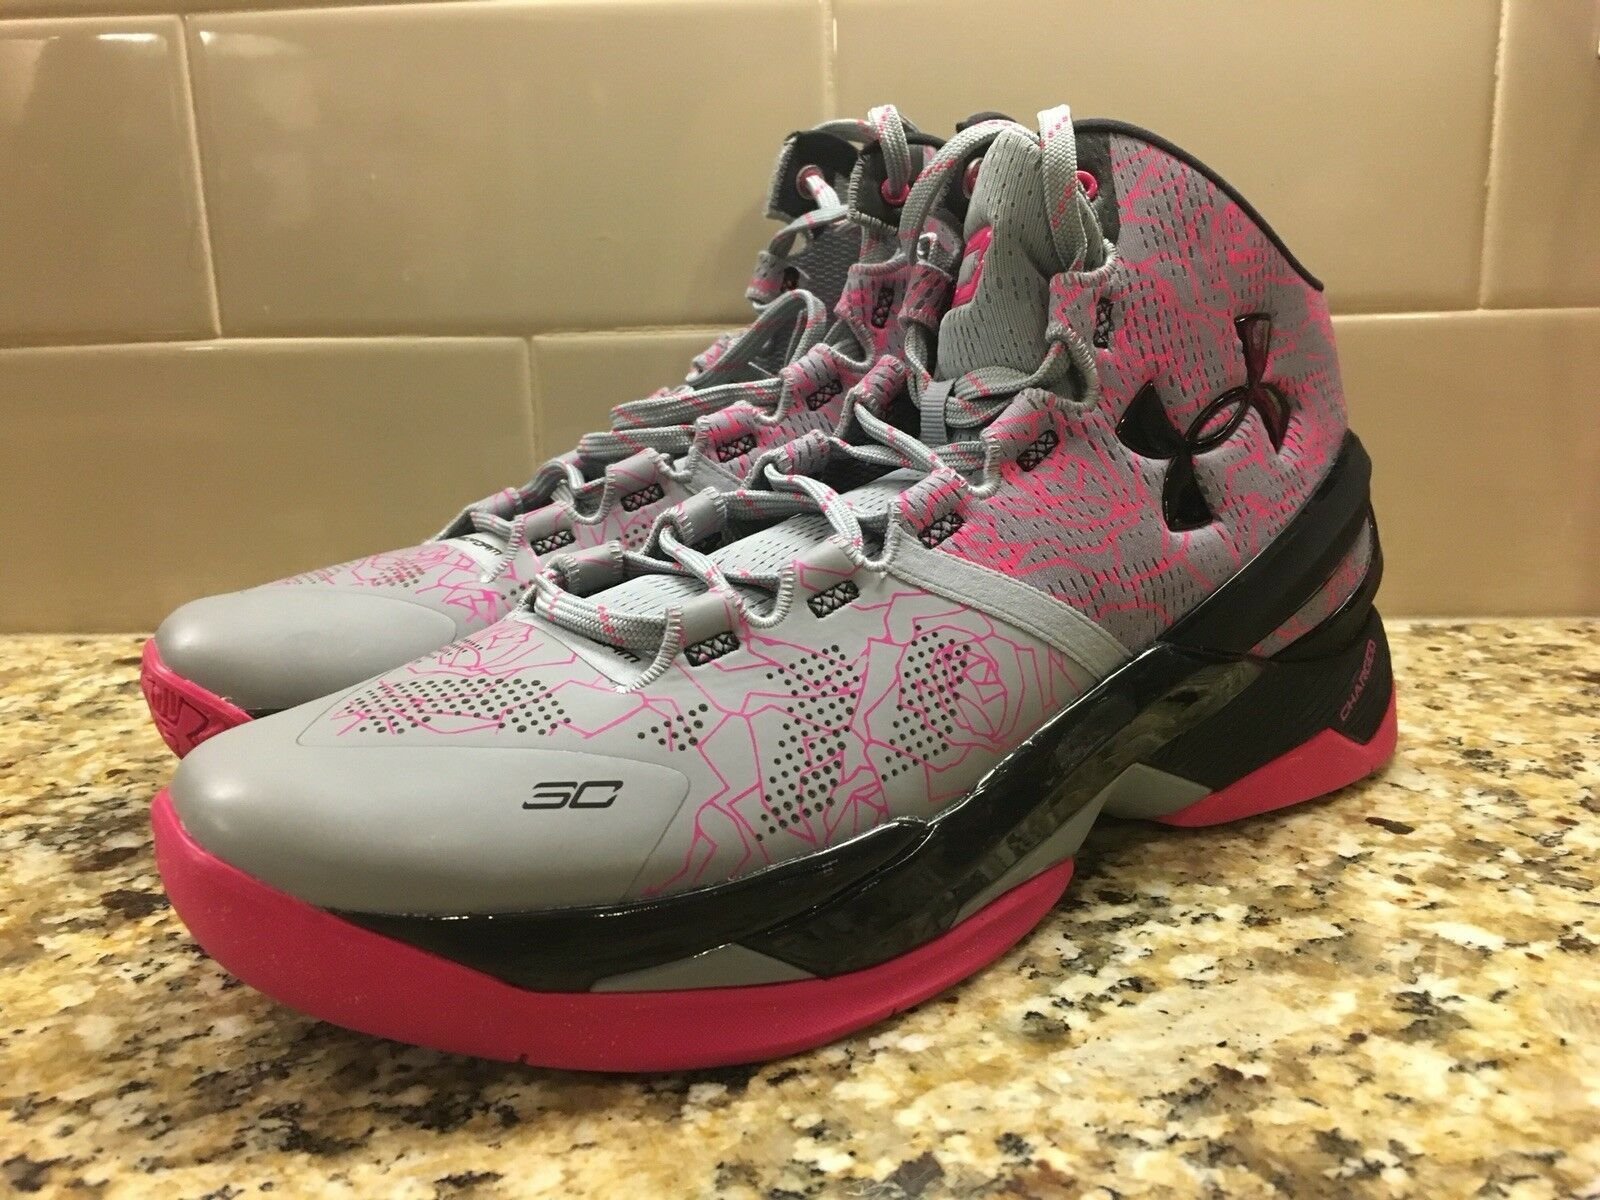 14474b62ef5c NEW UA Mens Under Armour Stephen Curry 2 1259007-037 Mothers Day Size 11.5  - Curry 4 Shoes - Latest Curry 4 Shoes -  curry  curryshoes  curry30shoes -  0 The ...